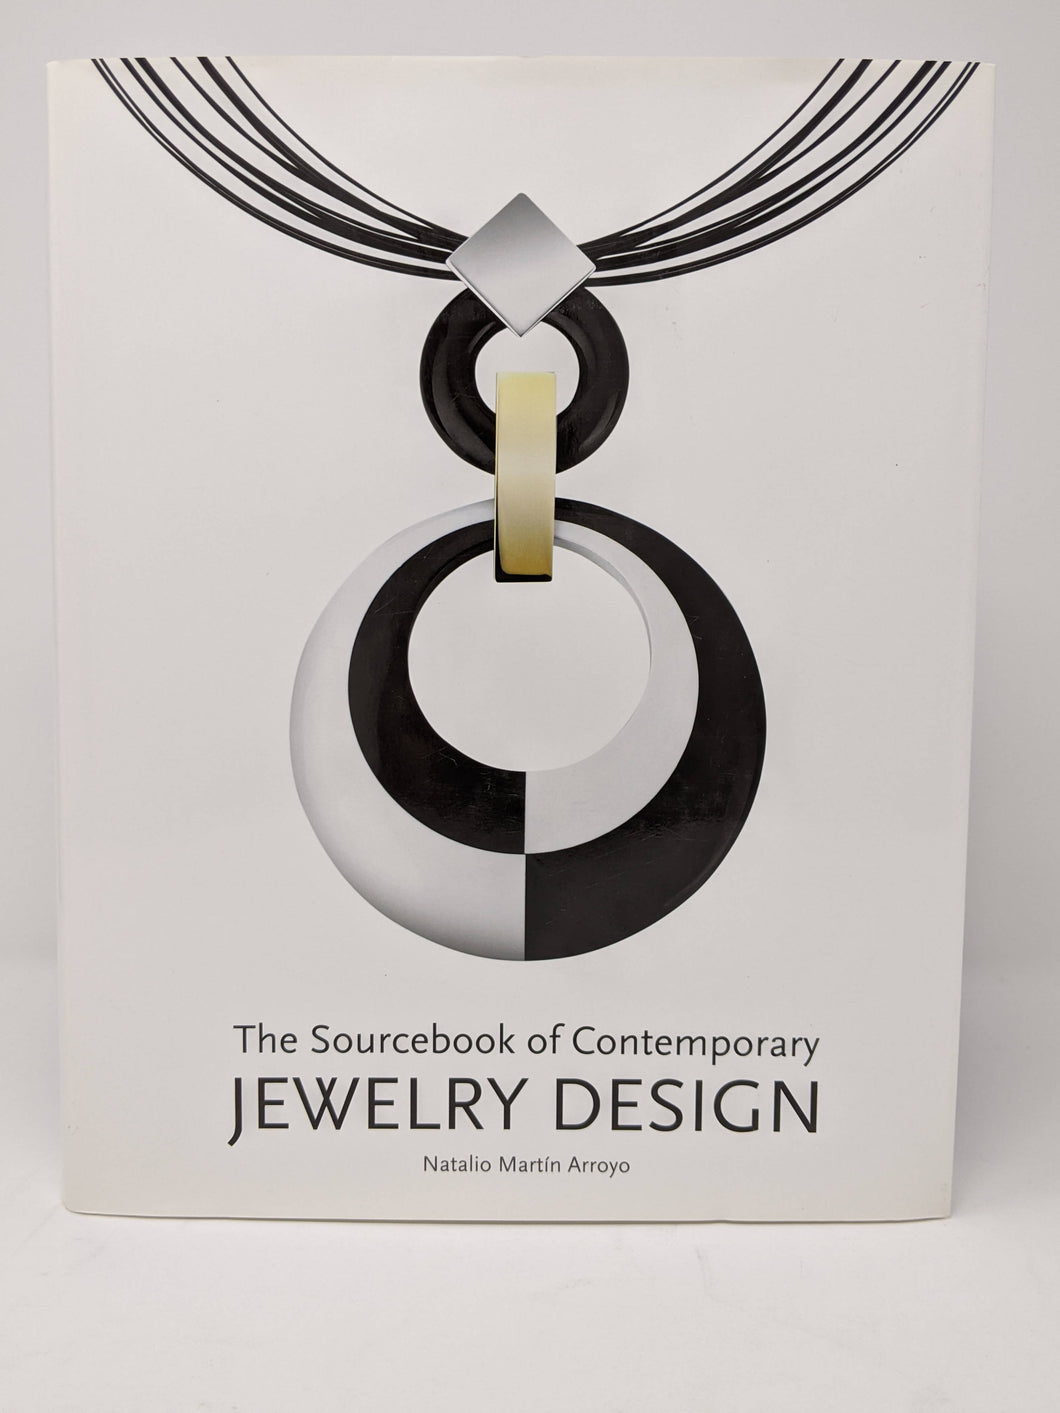 SALE -The Source Book of Contemporary Jewelry Design by Natalio Martin Arroyo (New Book)